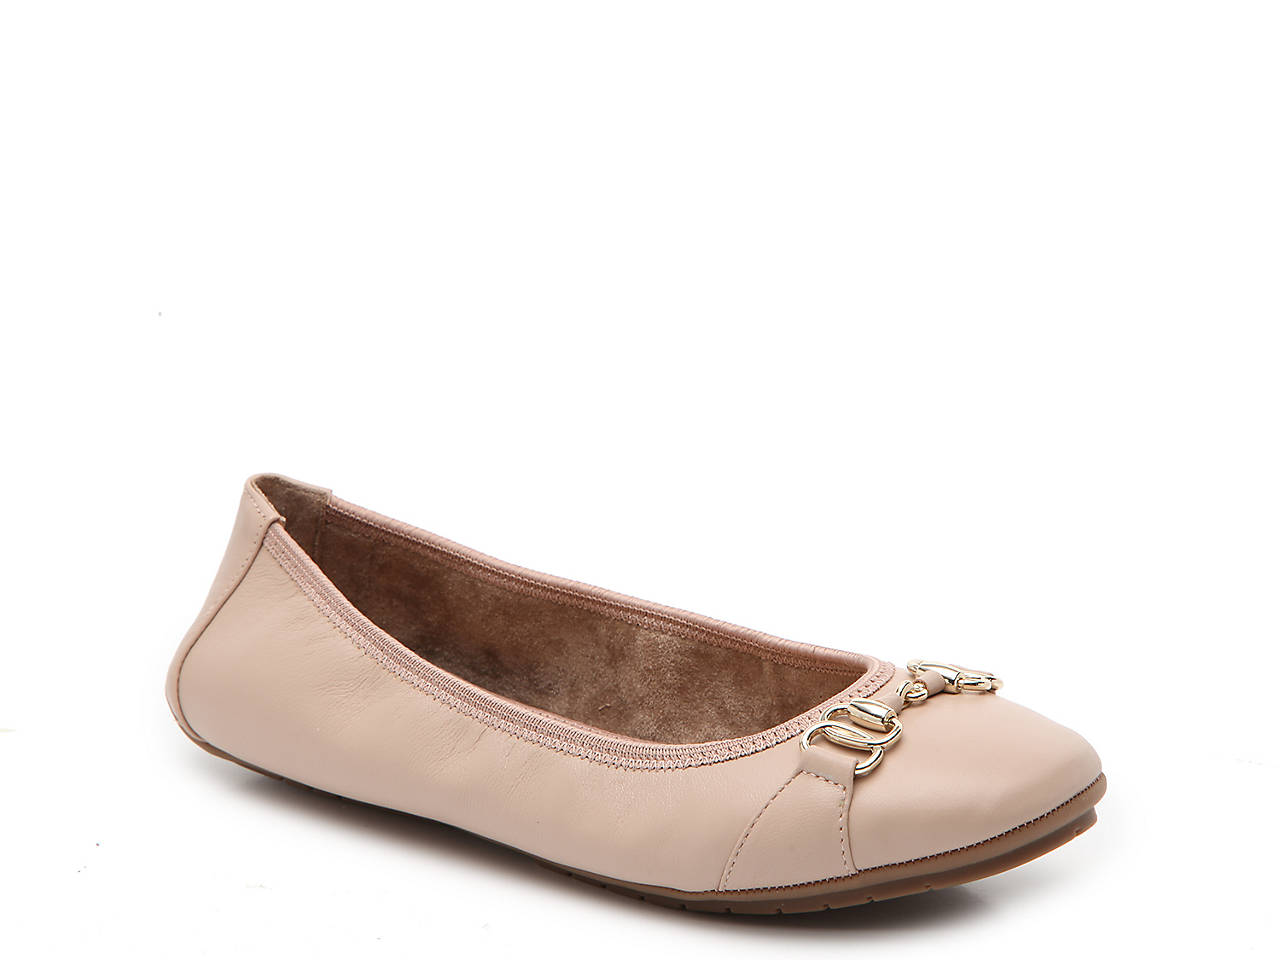 f9f94265a6 Me Too Olympia Ballet Flat Men s Shoes